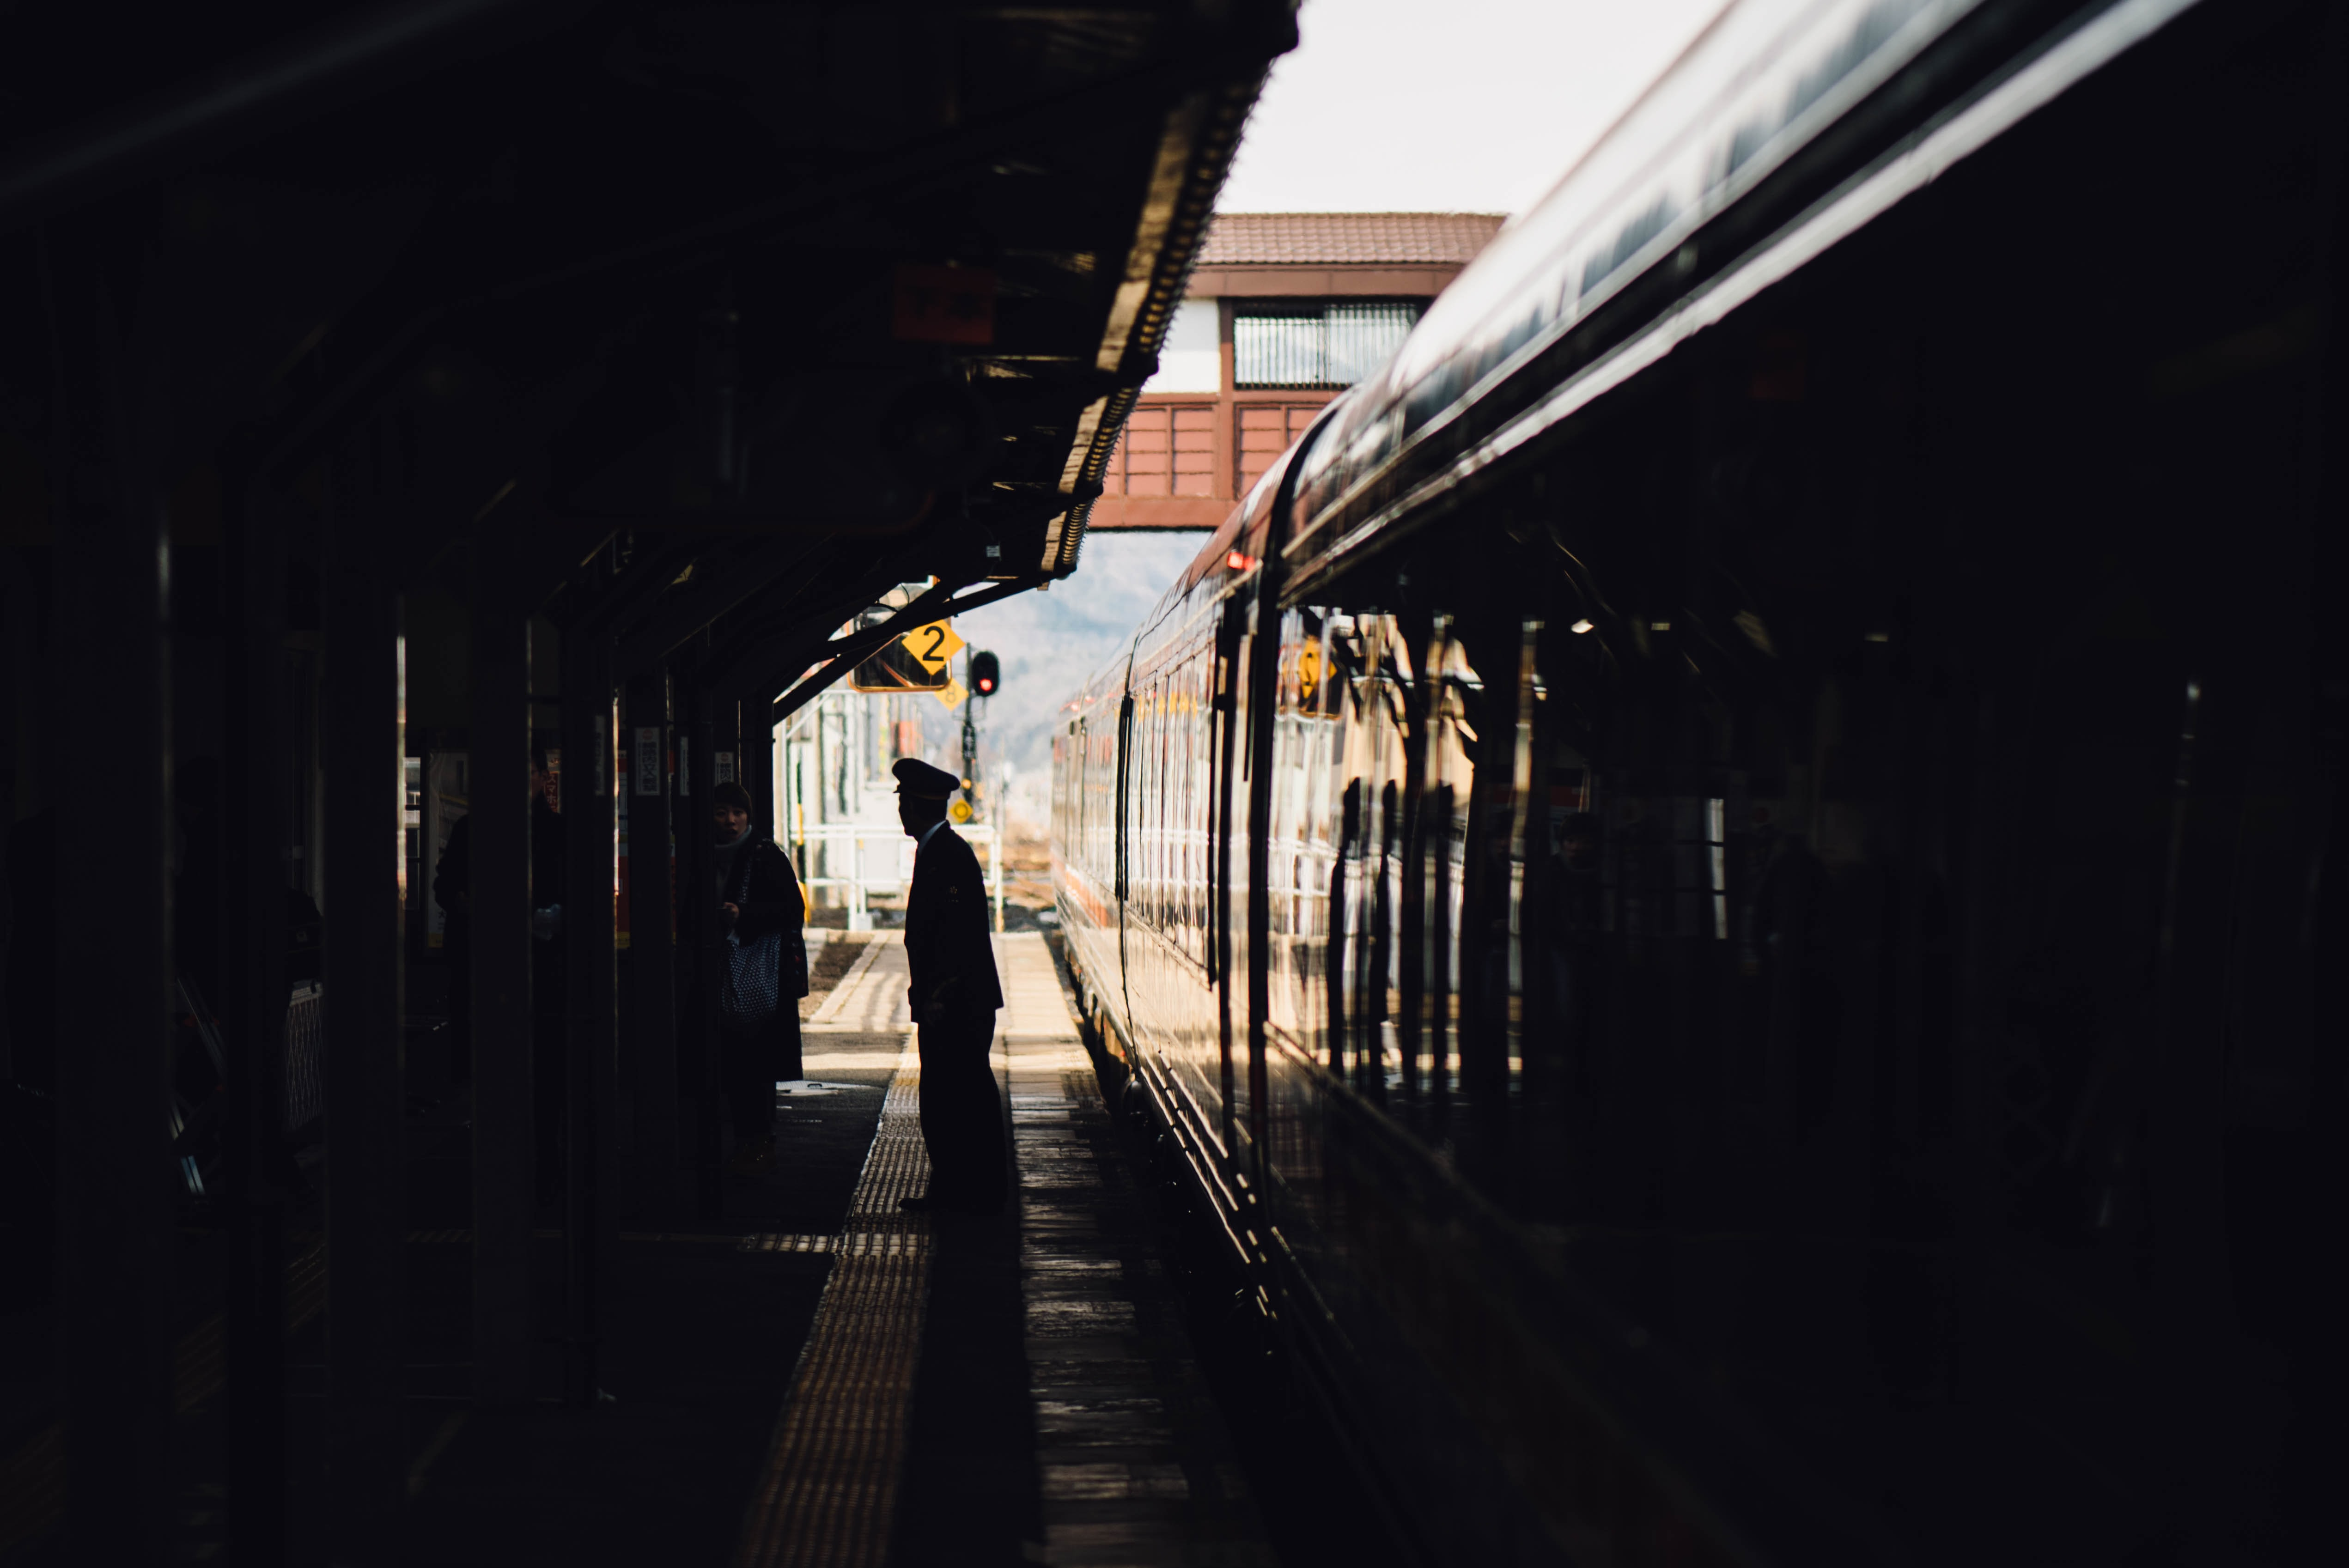 man standing near train in subway during daytime